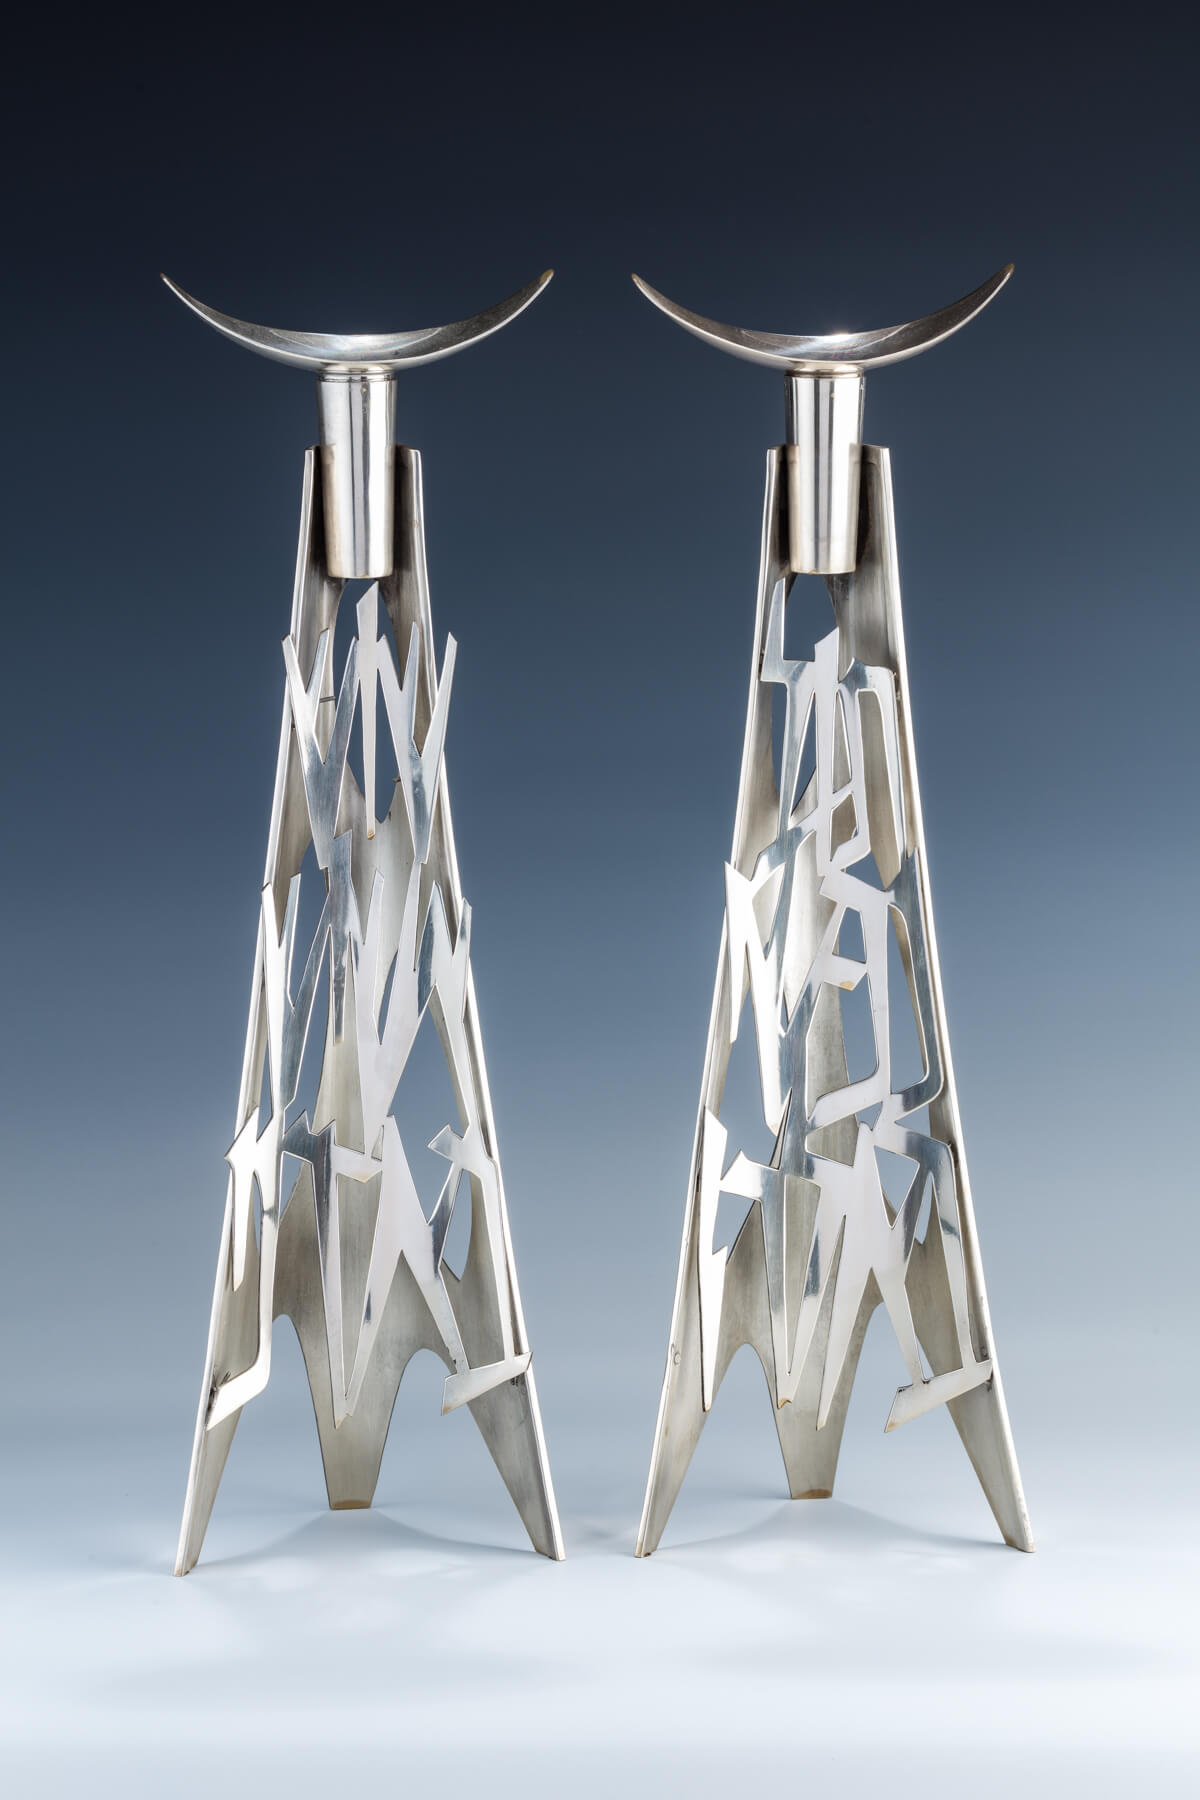 125. A Pair Of Sterling Silver Candlesticks By Wolpert